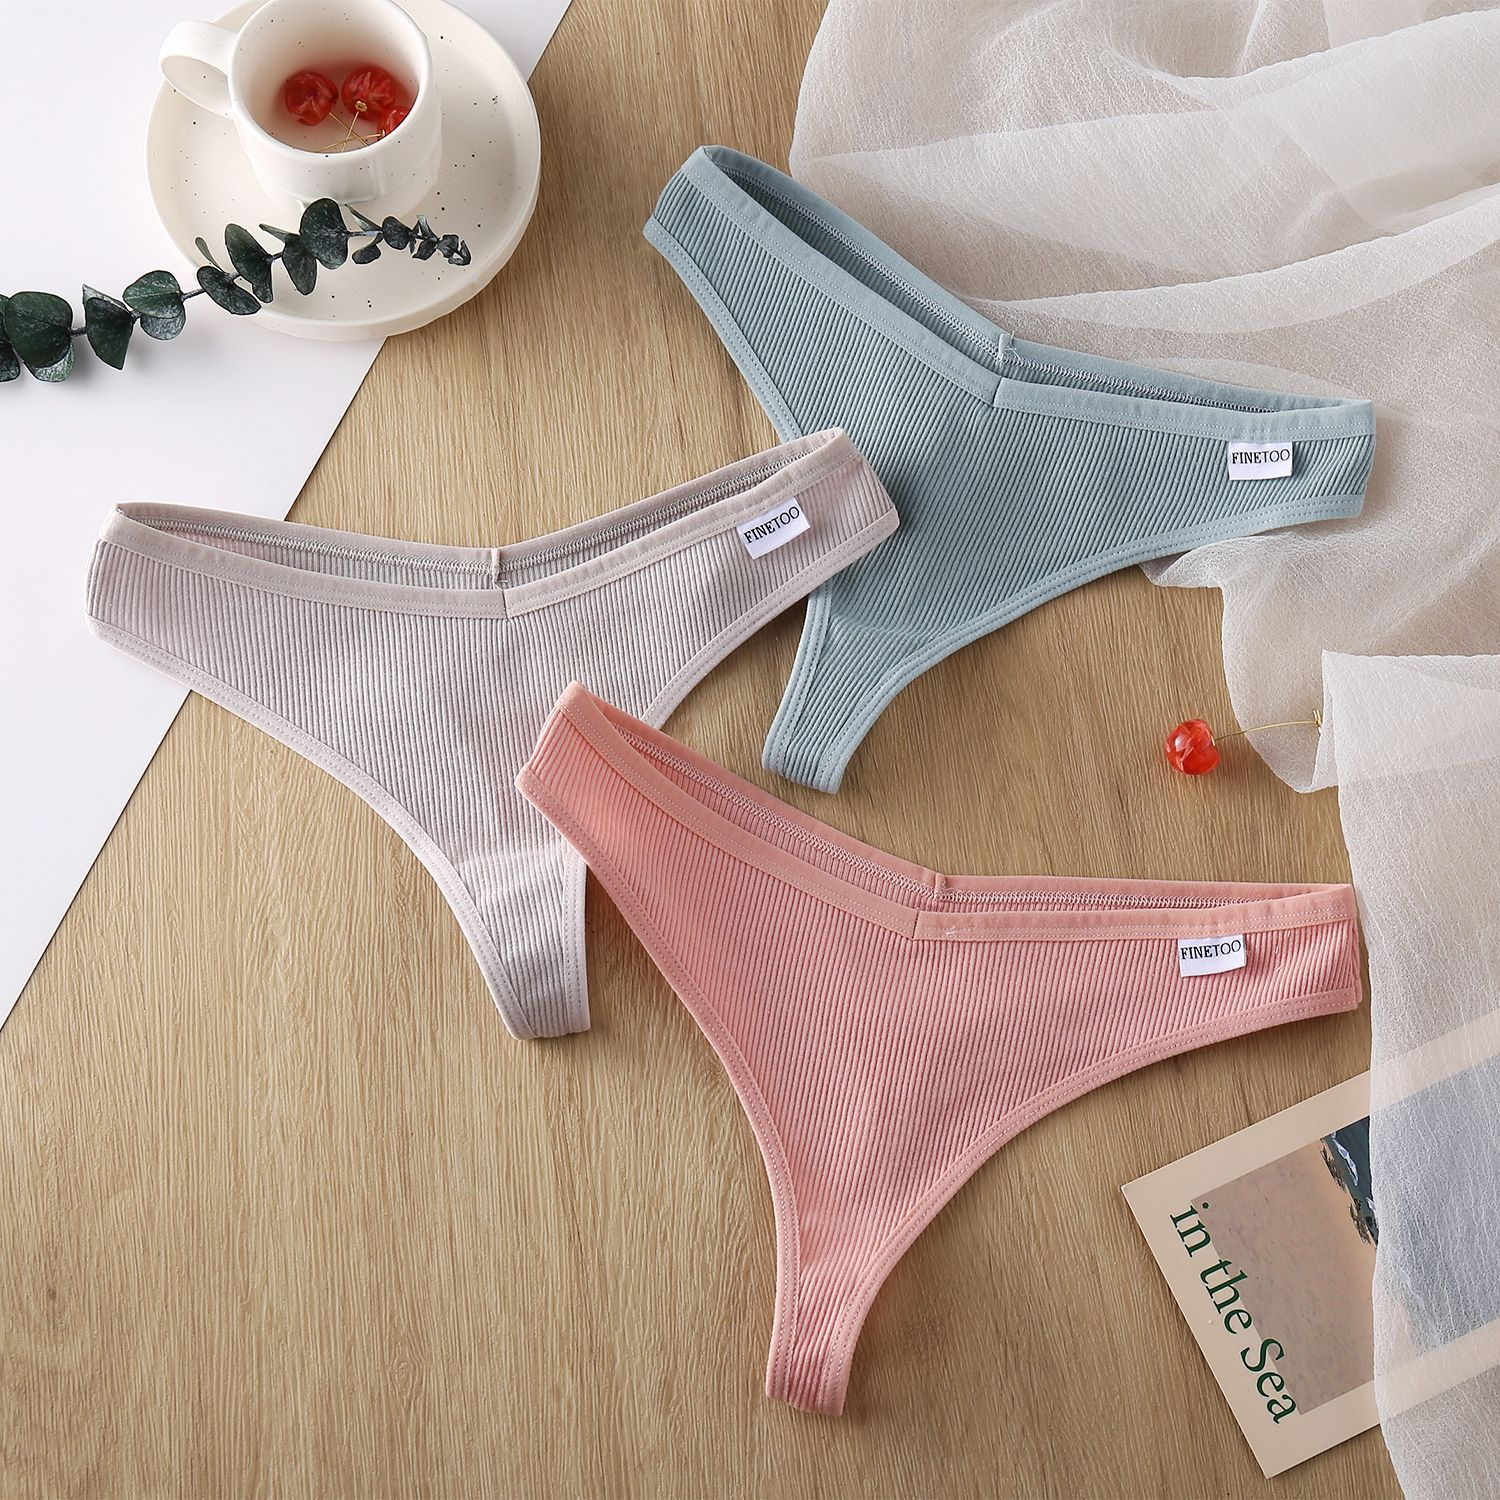 H7003e4779435450894ae9f711af98d9dz Fashion G-String Panties Cotton Women Underwear Sexy Panties Low-Rise Female Underpants Thong Solid Color Pantys M-XL Underwear